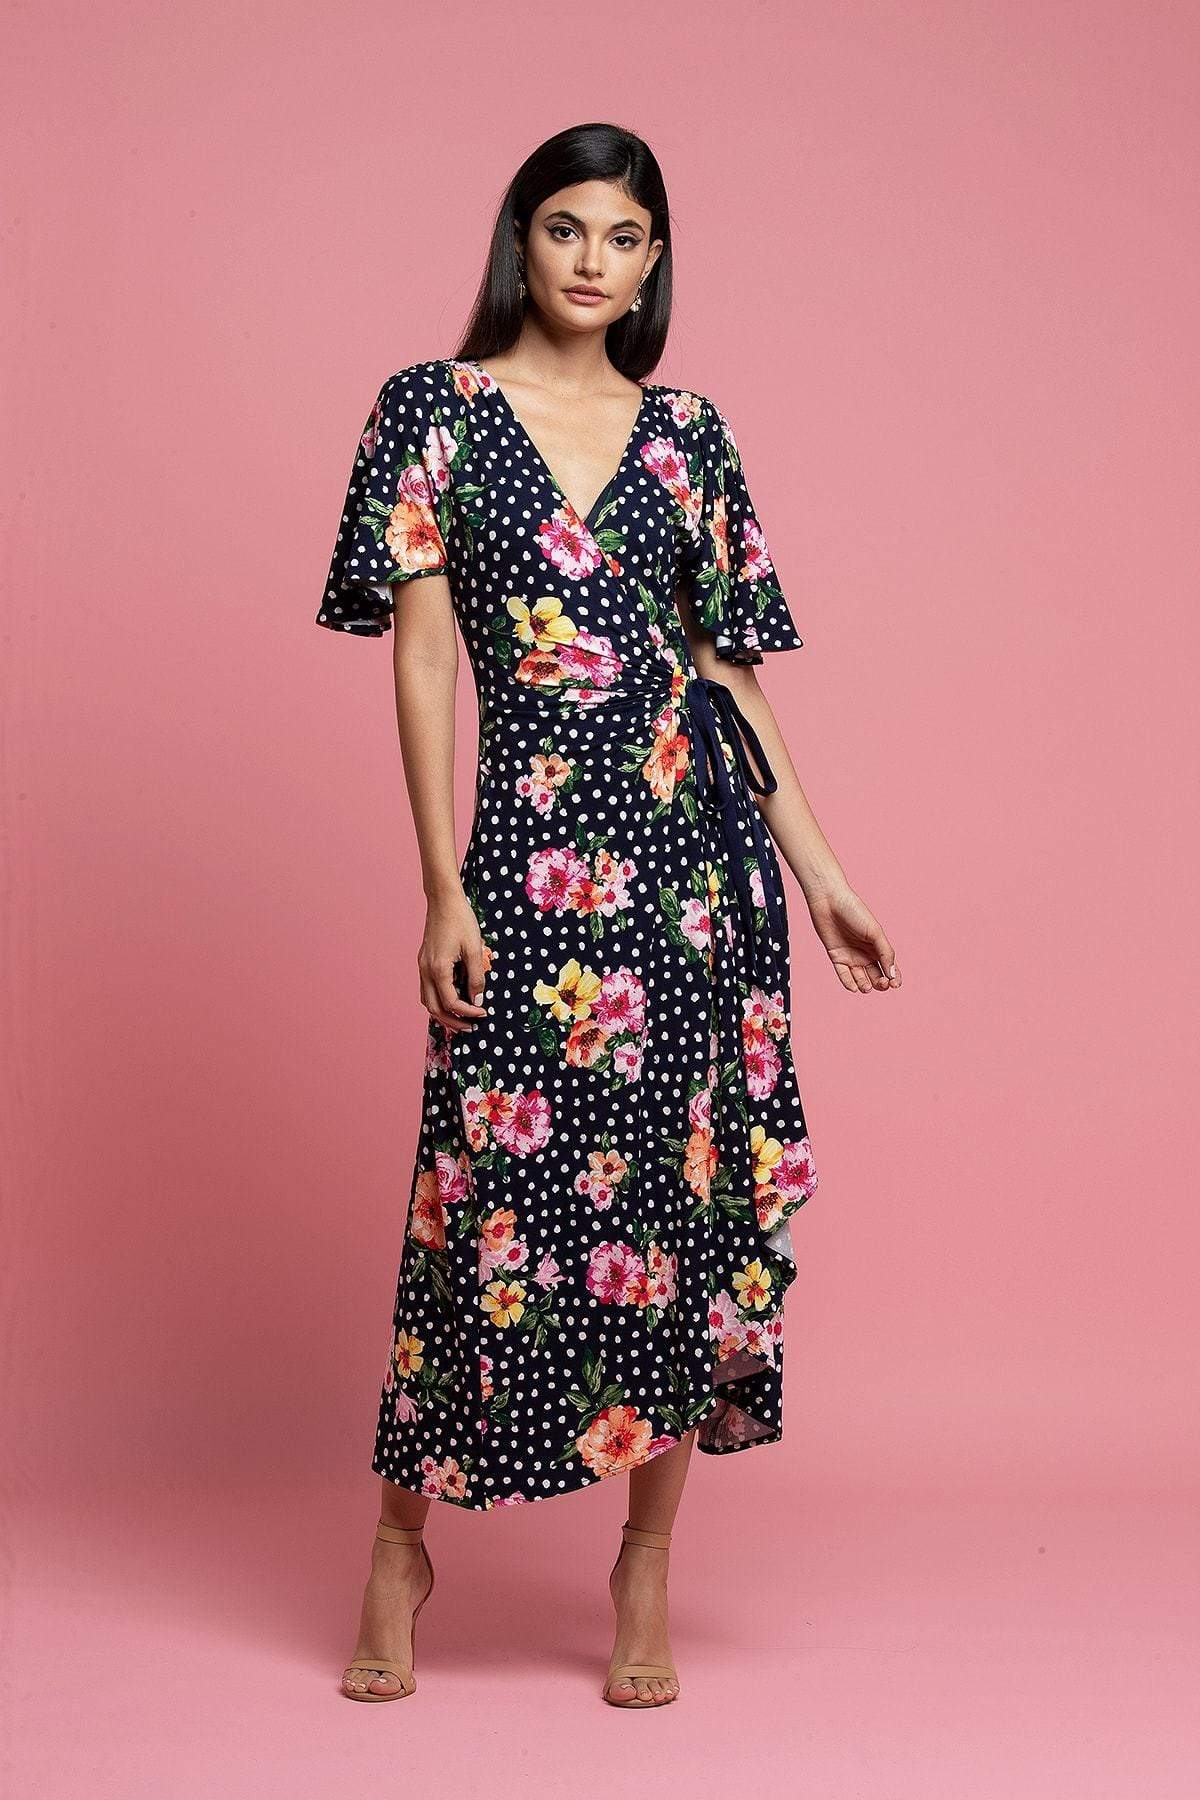 Eva Franco Dress Marika Wrap Dress - Navy Dot Floral